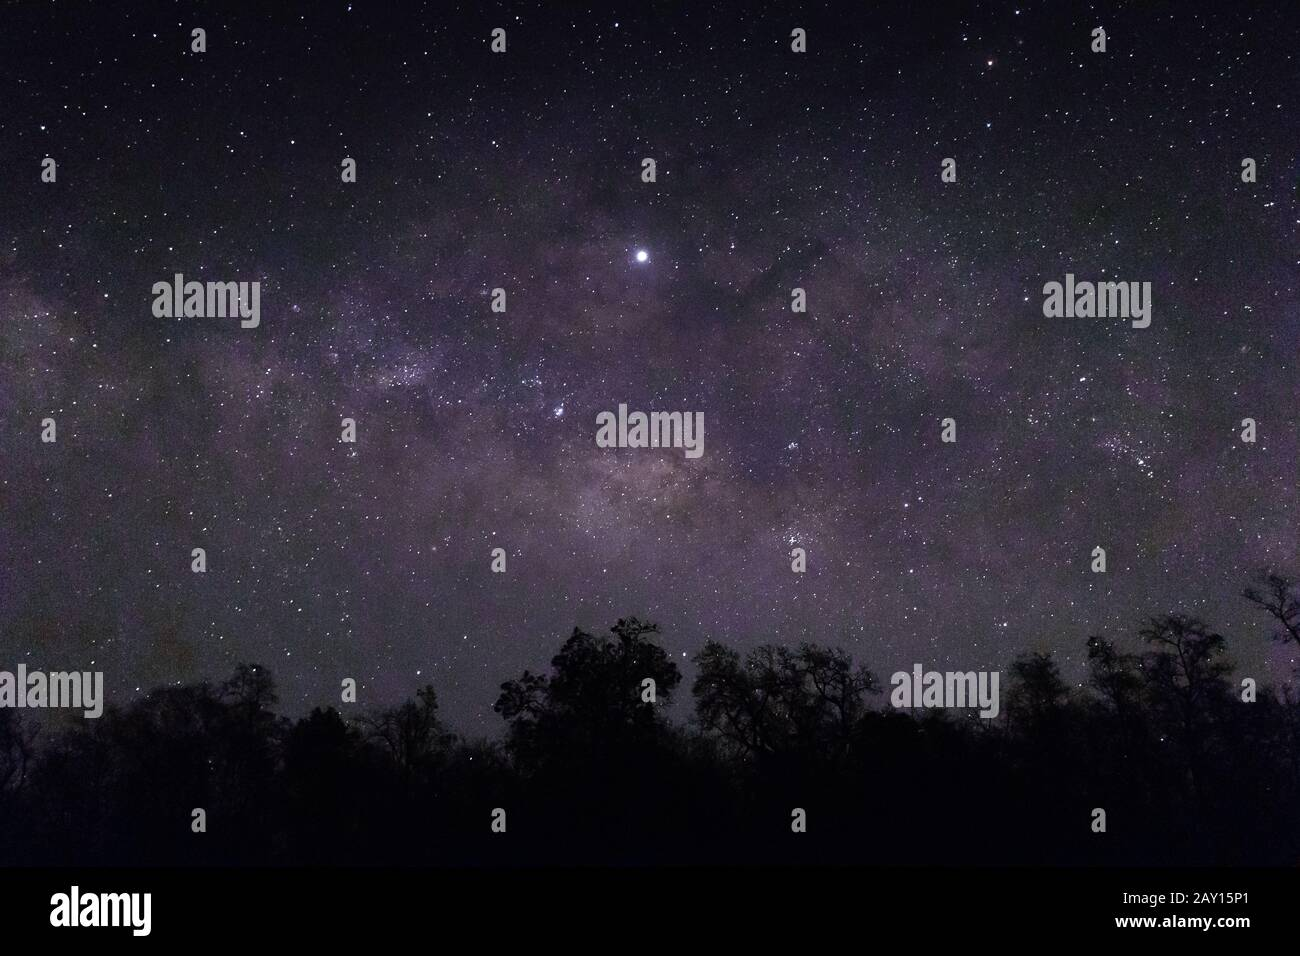 The Sky Full Of Stars And Silhouettes Of Trees Below Perfect For